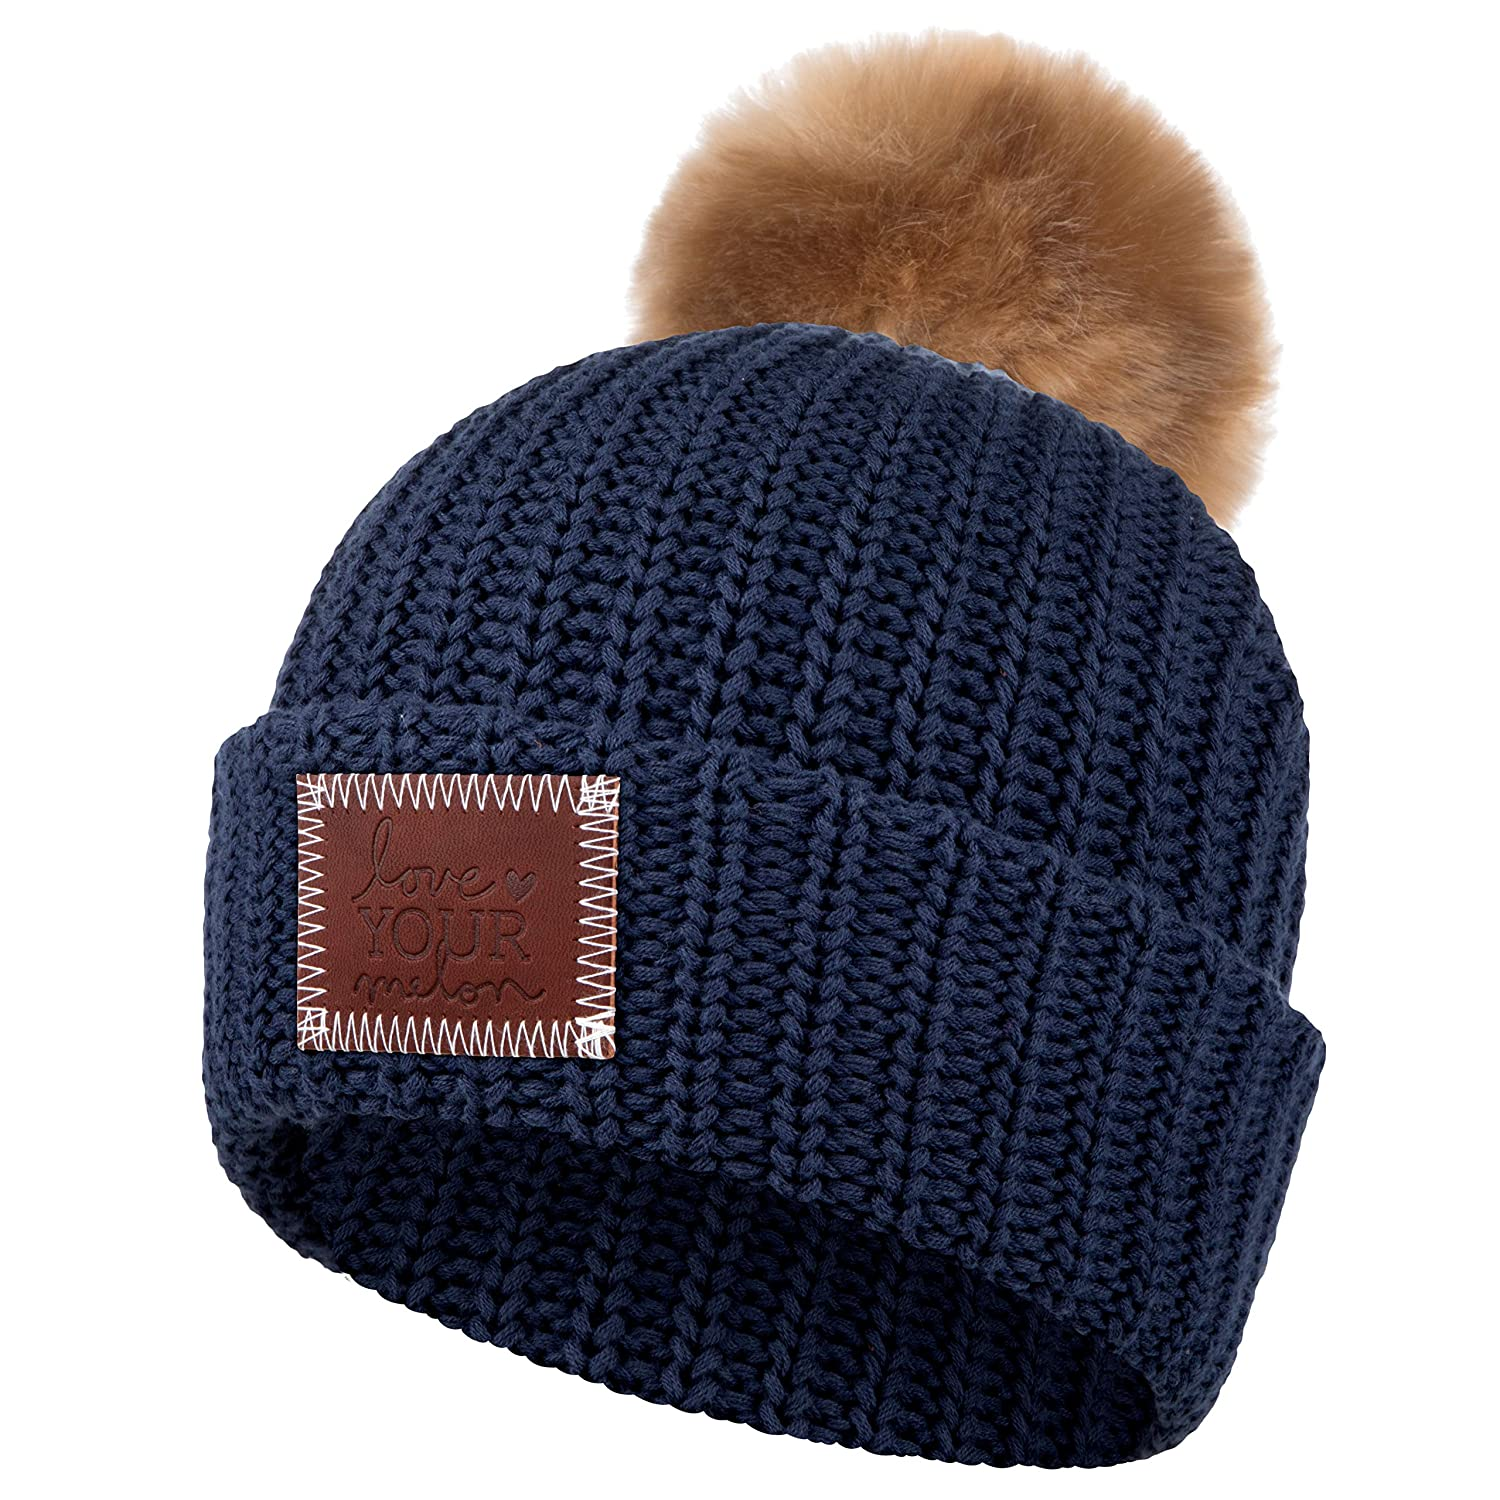 Love Your Melon Cuffed Pom Beanie Black (Natural Pom) at Amazon Men s  Clothing store  c65764b454c